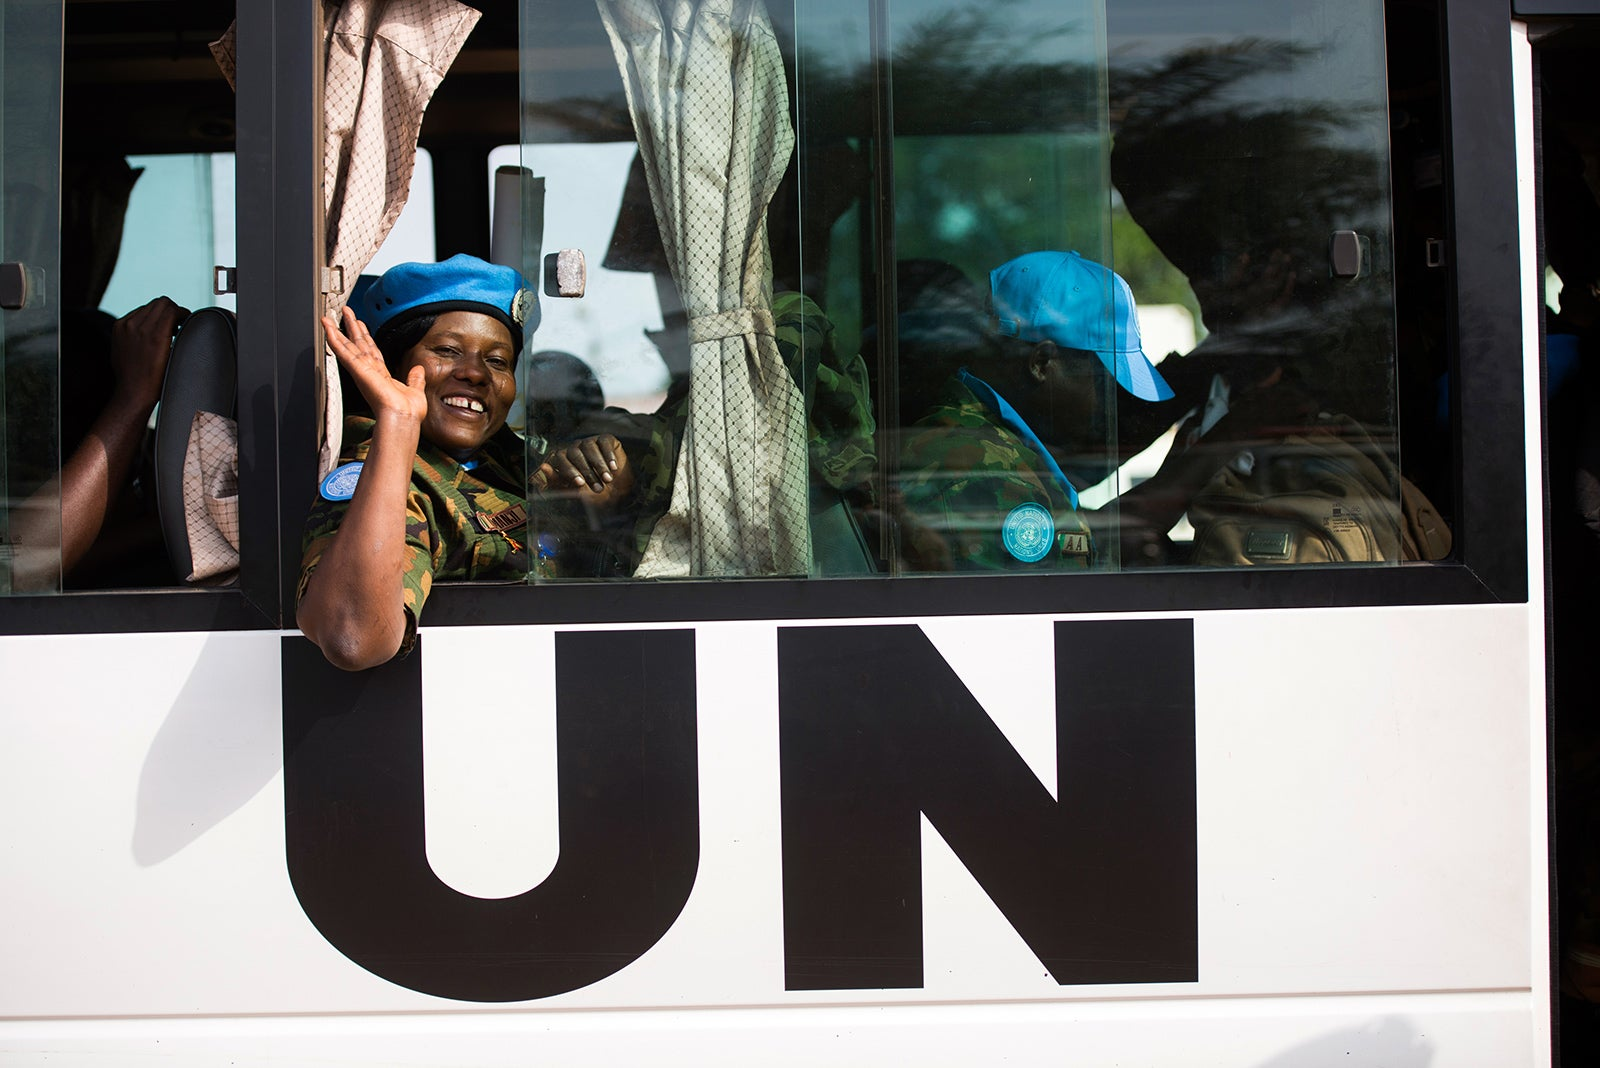 A UN peacekeeper. Credit UN, Photo: Albert Gonzalez Farran.